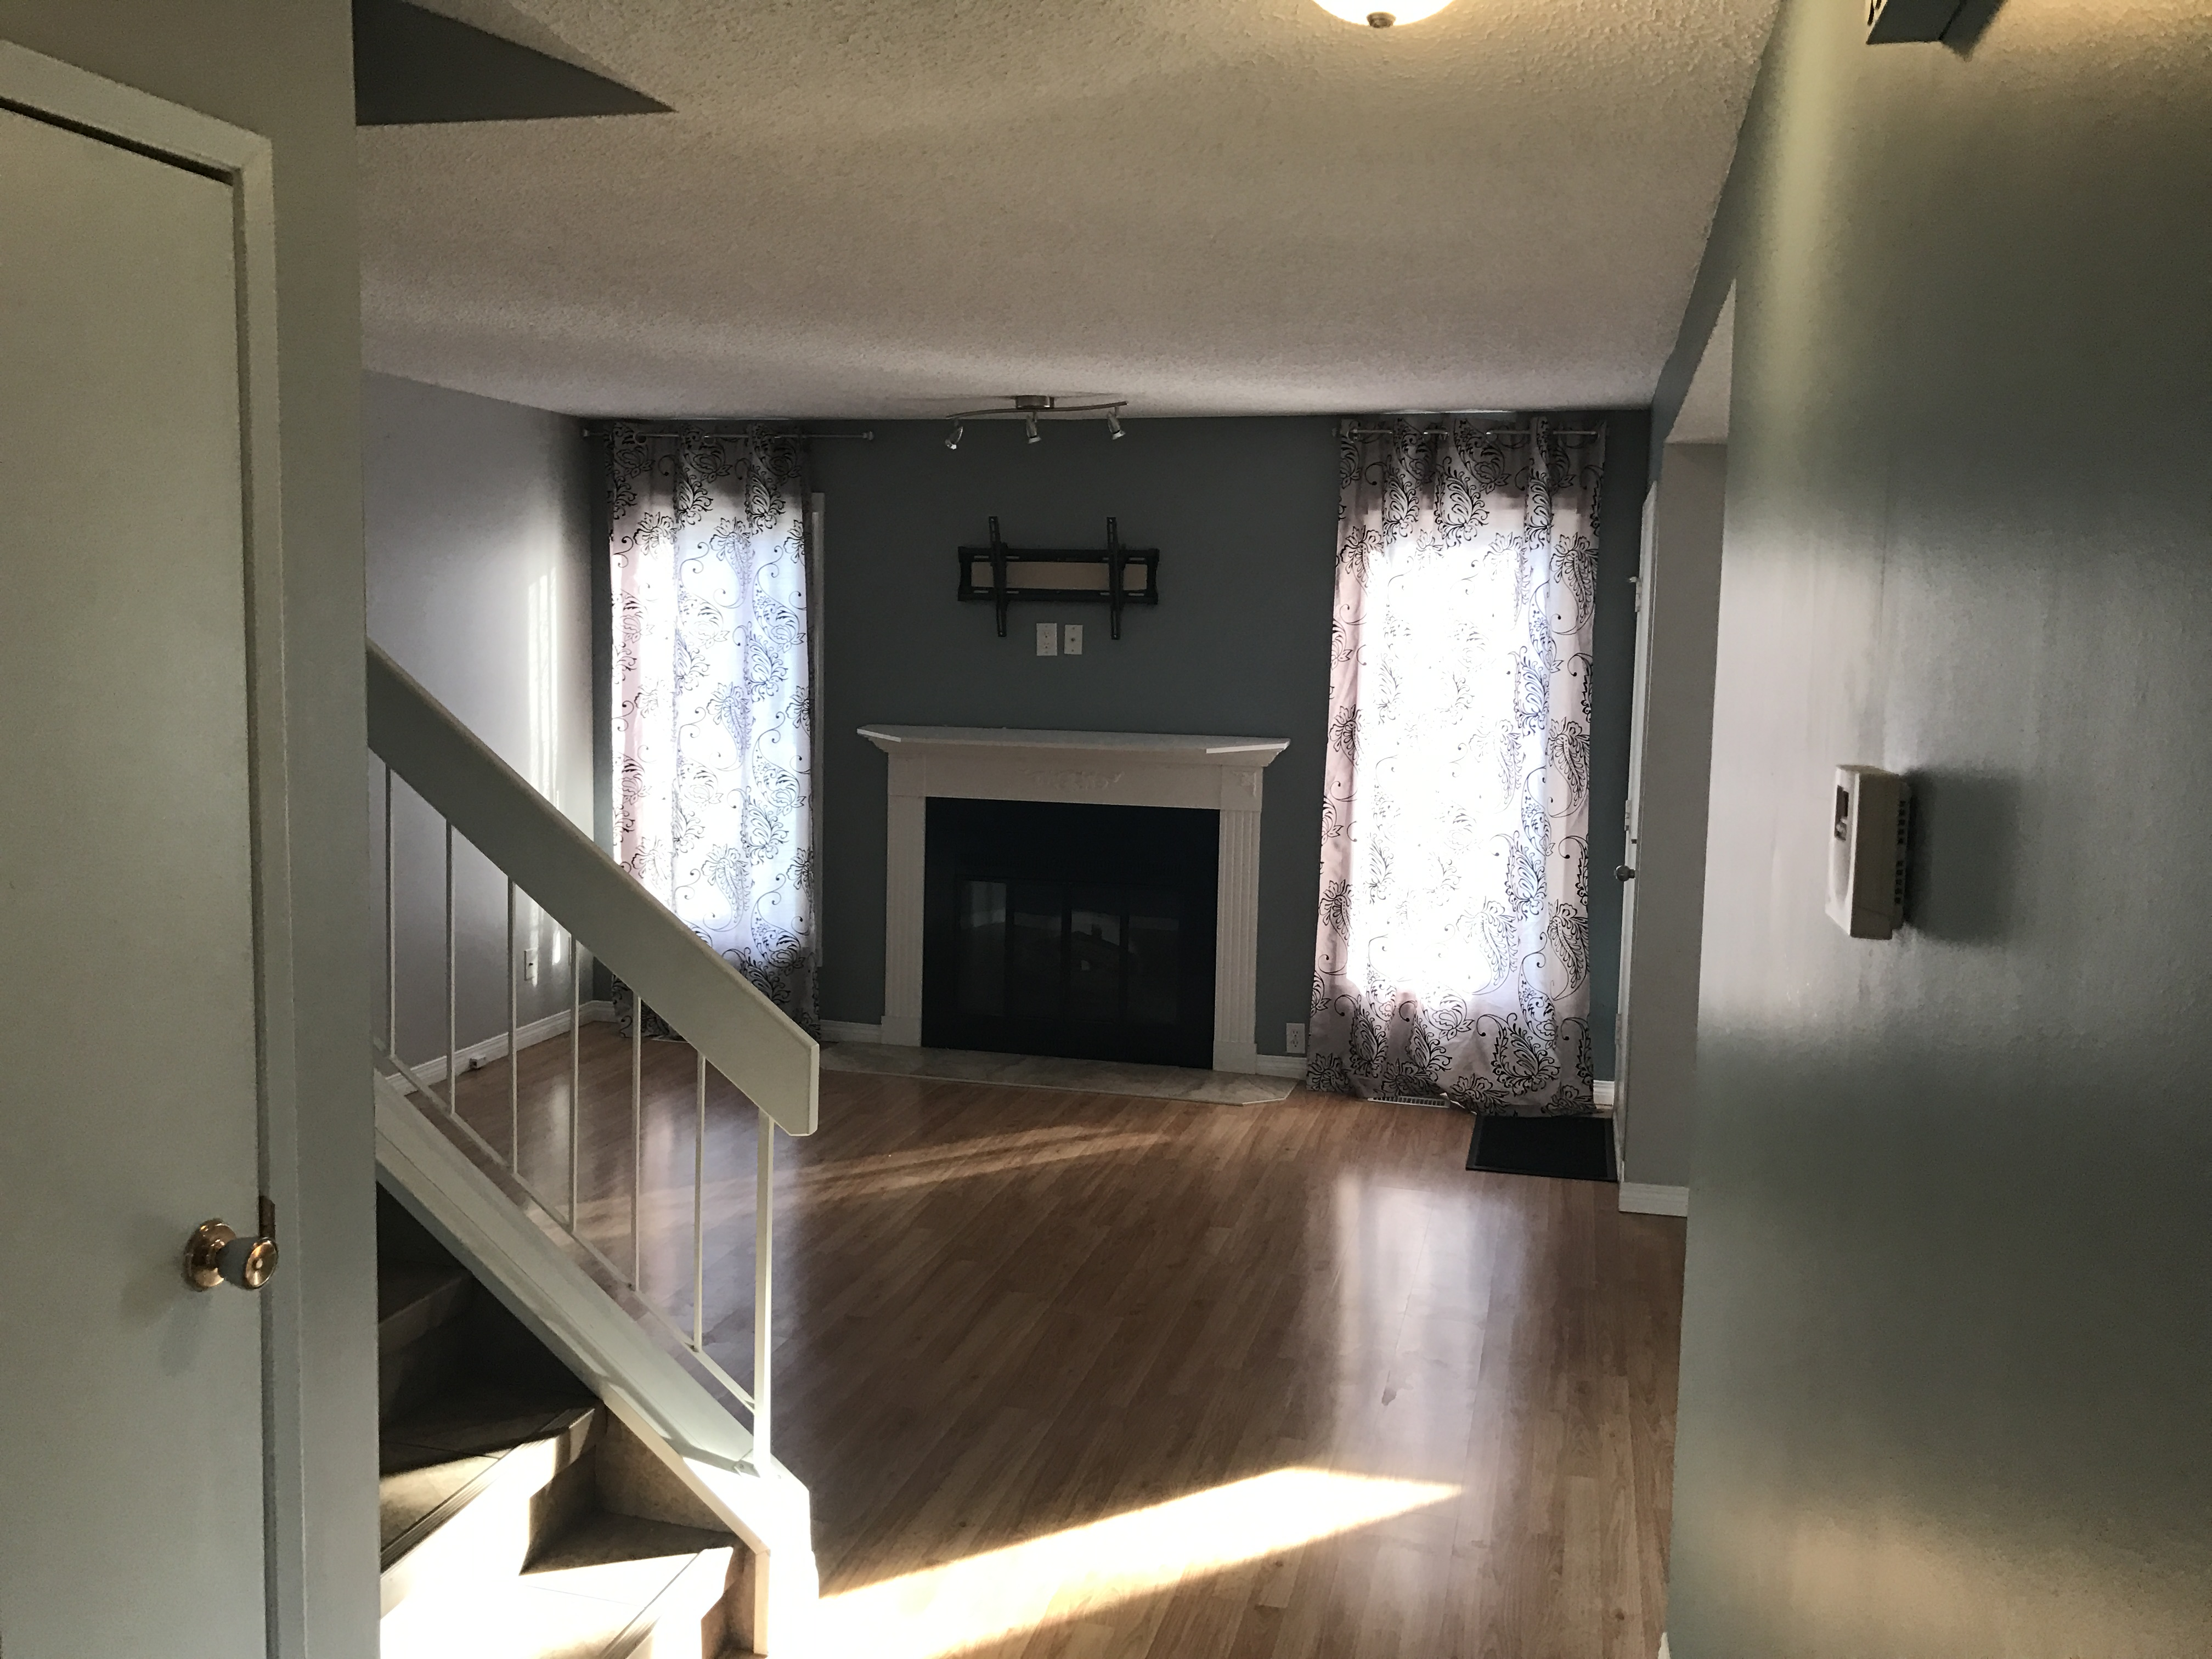 3 bedroom 2 bath Townhouse/FINISHED basement $1400/month